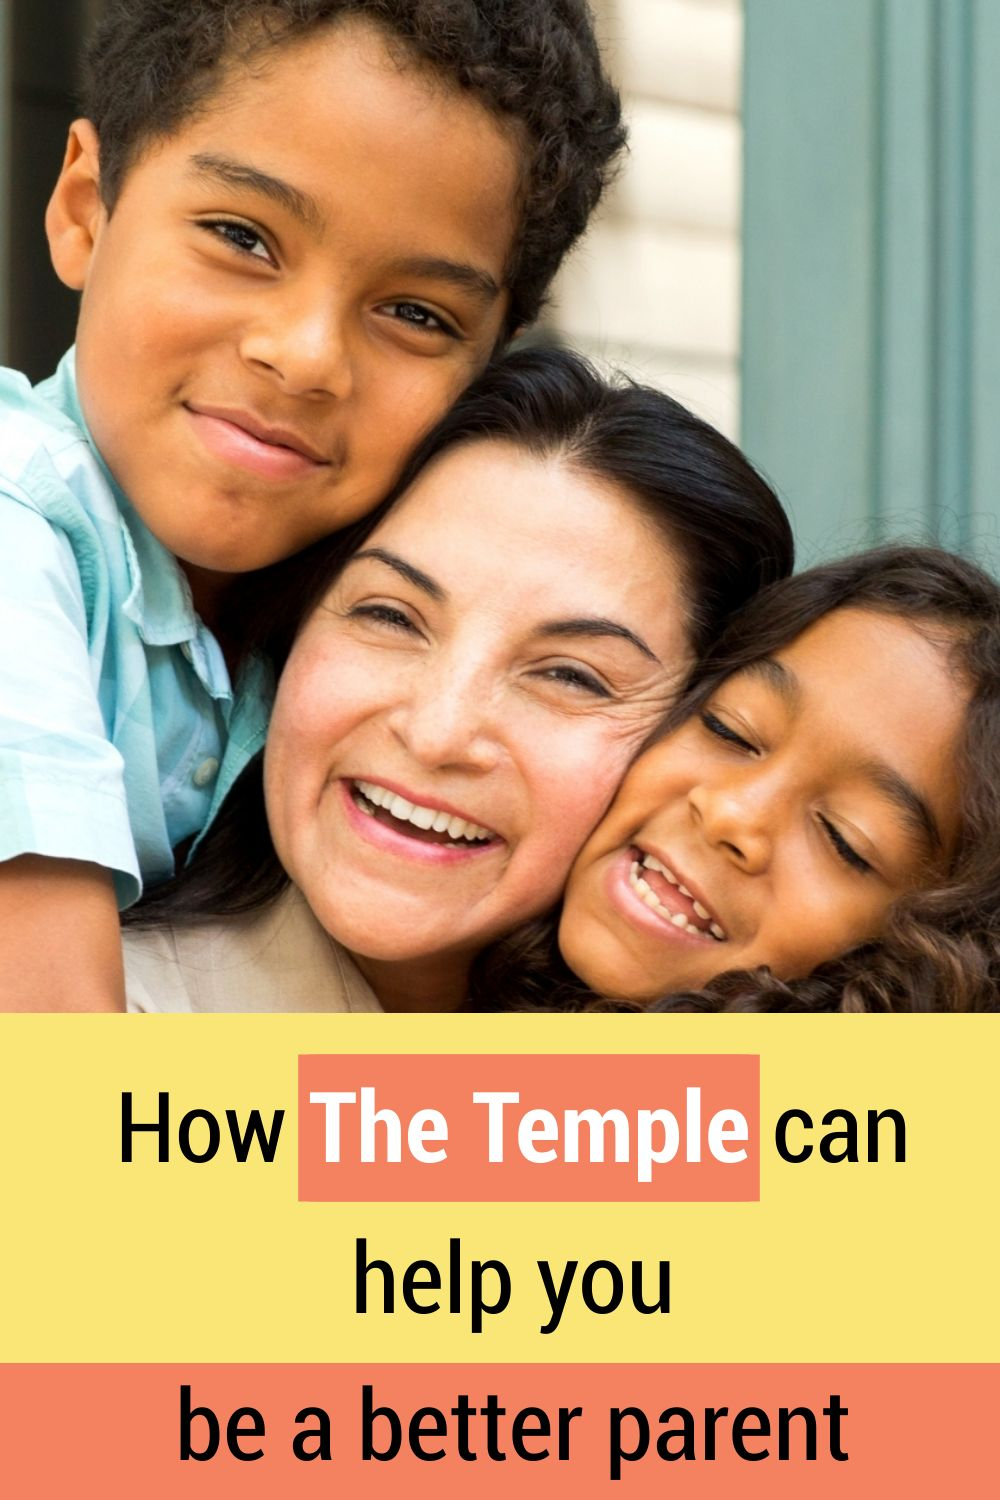 How the Temple can help you be a better parent.